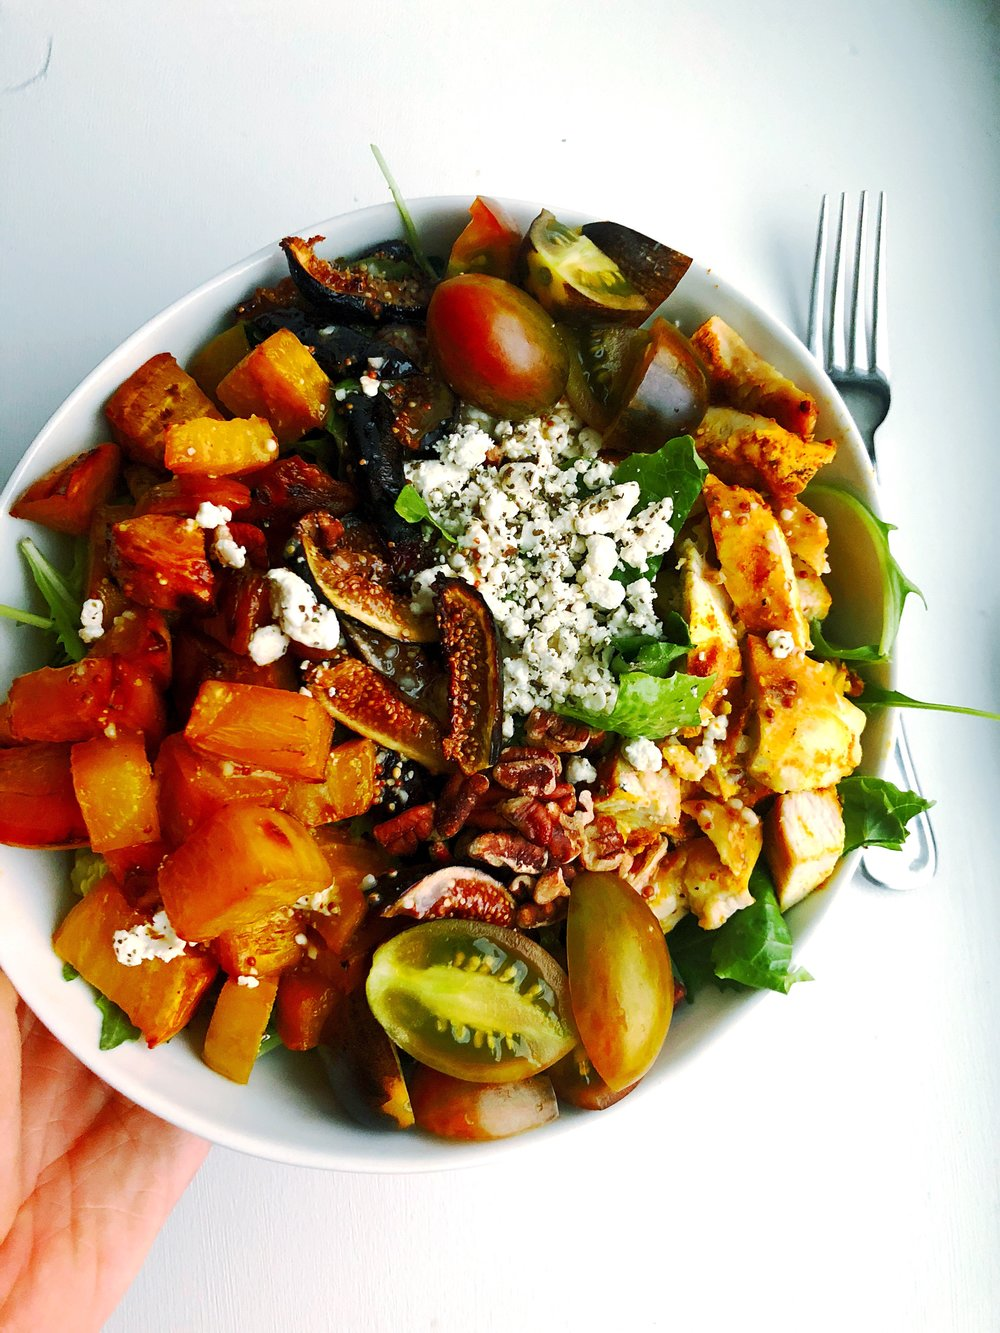 Fall-golden-beet-salad-with-roasted-figs-and-vinaigrette (1).jpg